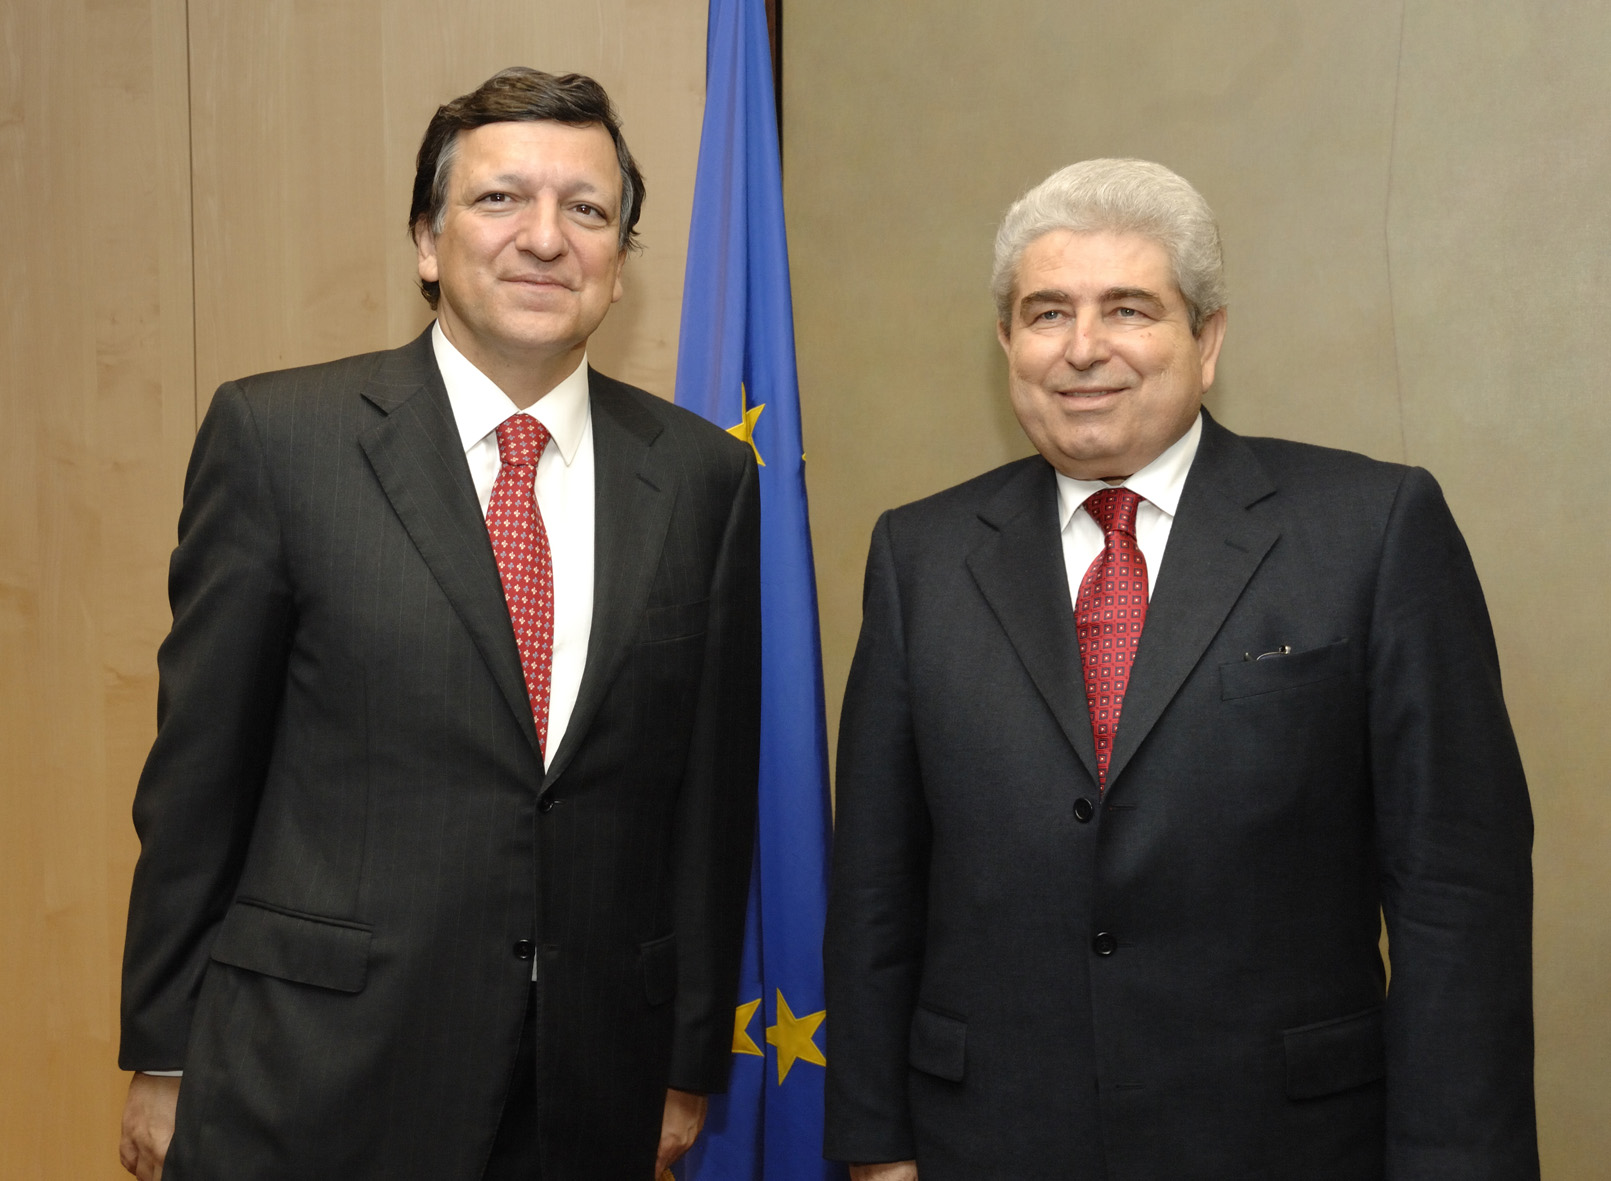 Visit by Demetris Christofias, President of the House of Representatives of Cyprus, to the EC